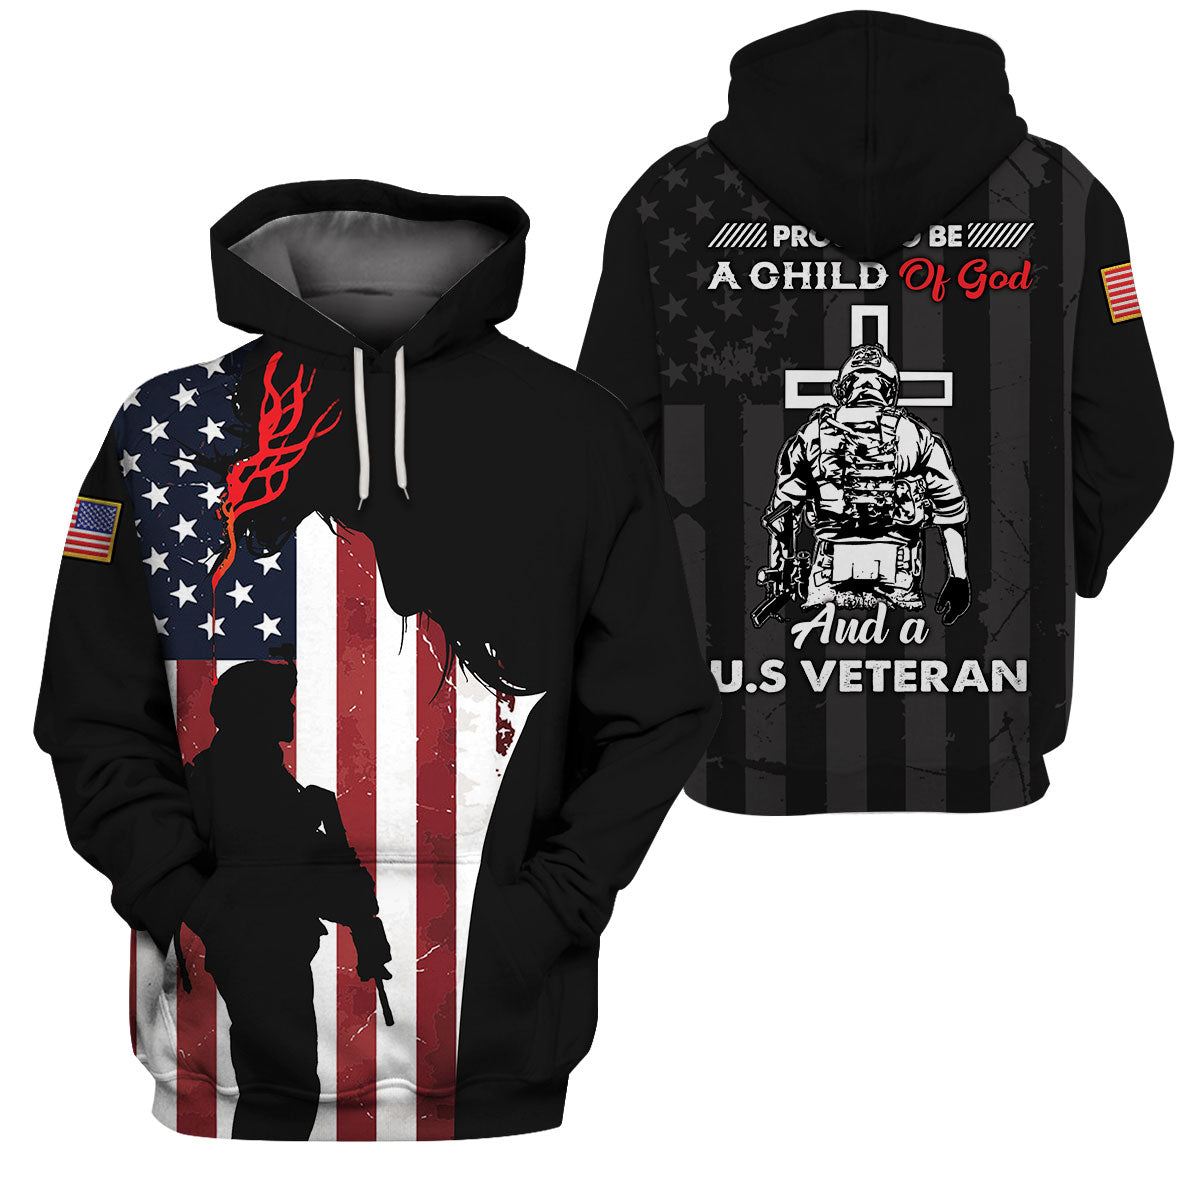 3D Full Print Apparel - U.S. Veteran and Child of God